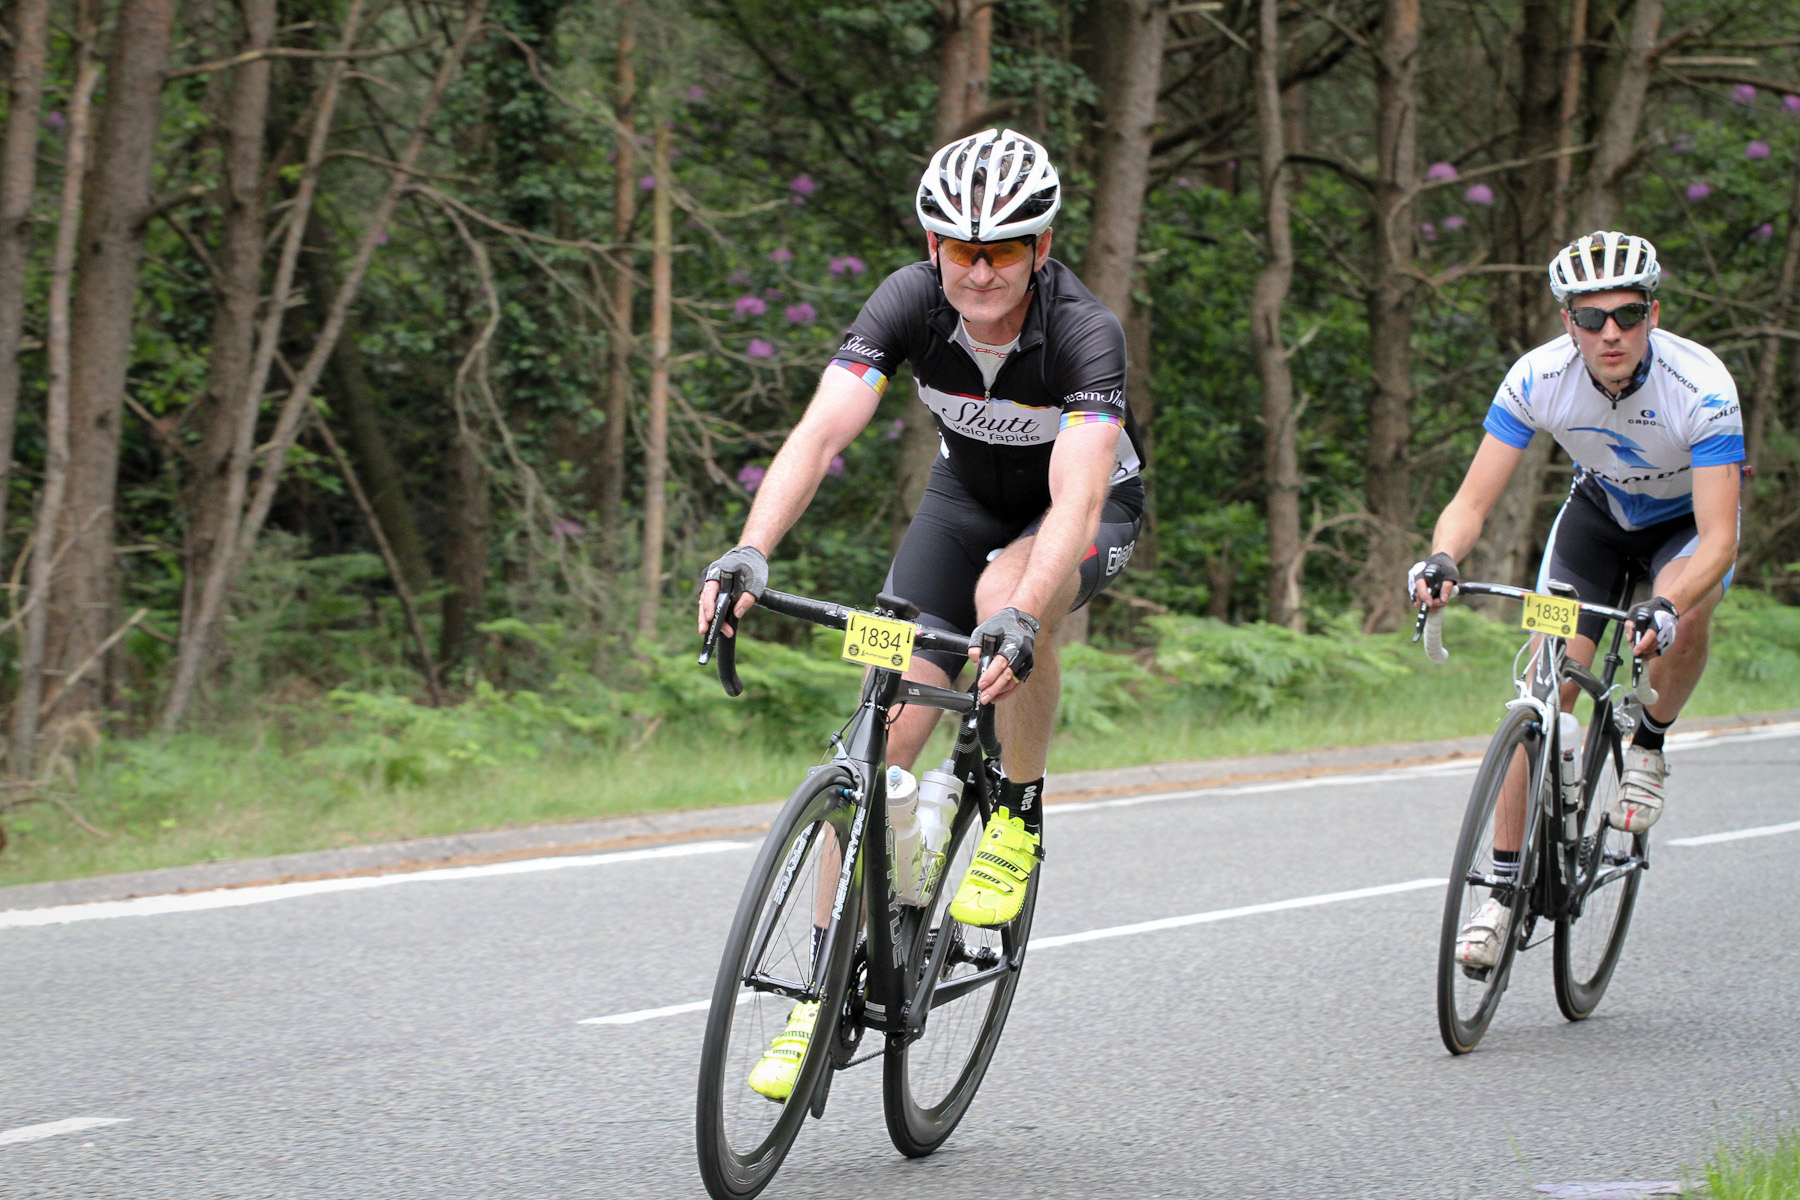 In action at the Wiggle UKCE Bournemouth Sportive